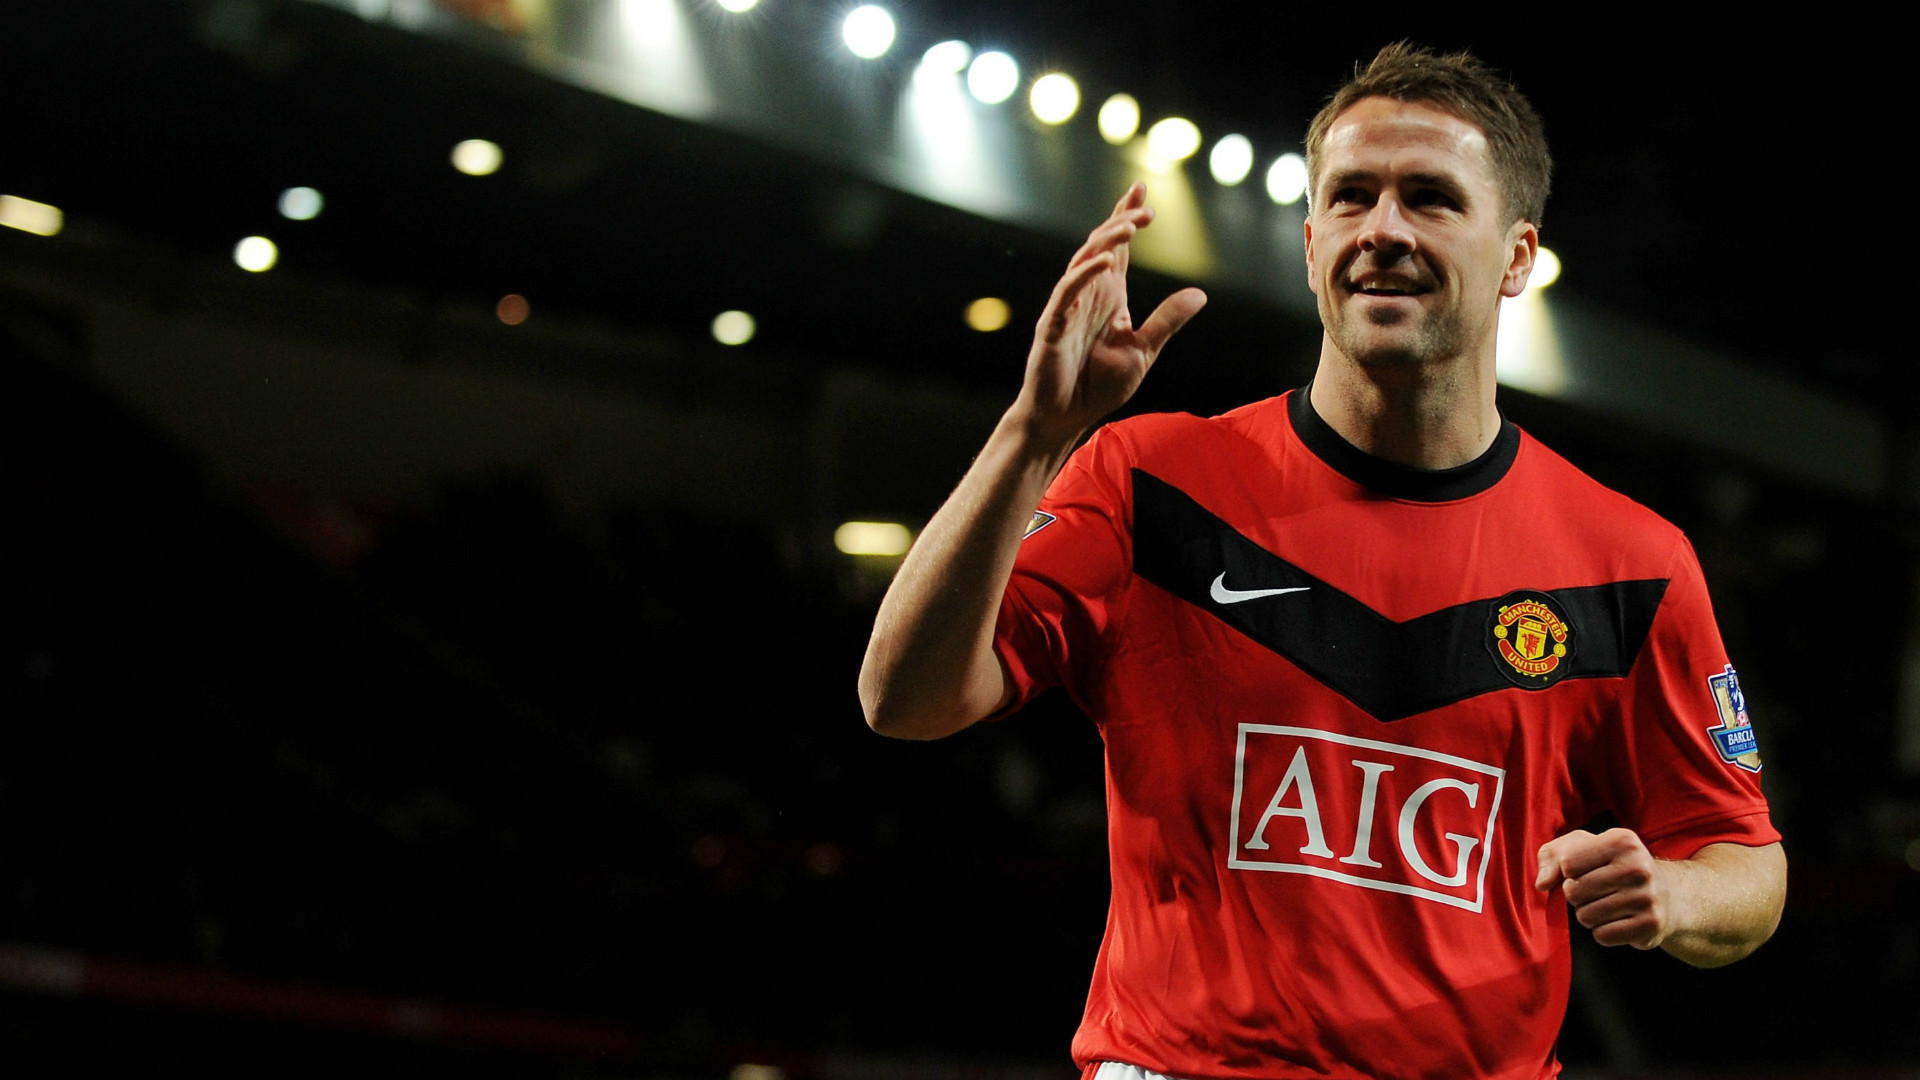 'I couldn't believe my luck when Man Utd wanted me!' – Liverpool snub led Owen to Old Trafford